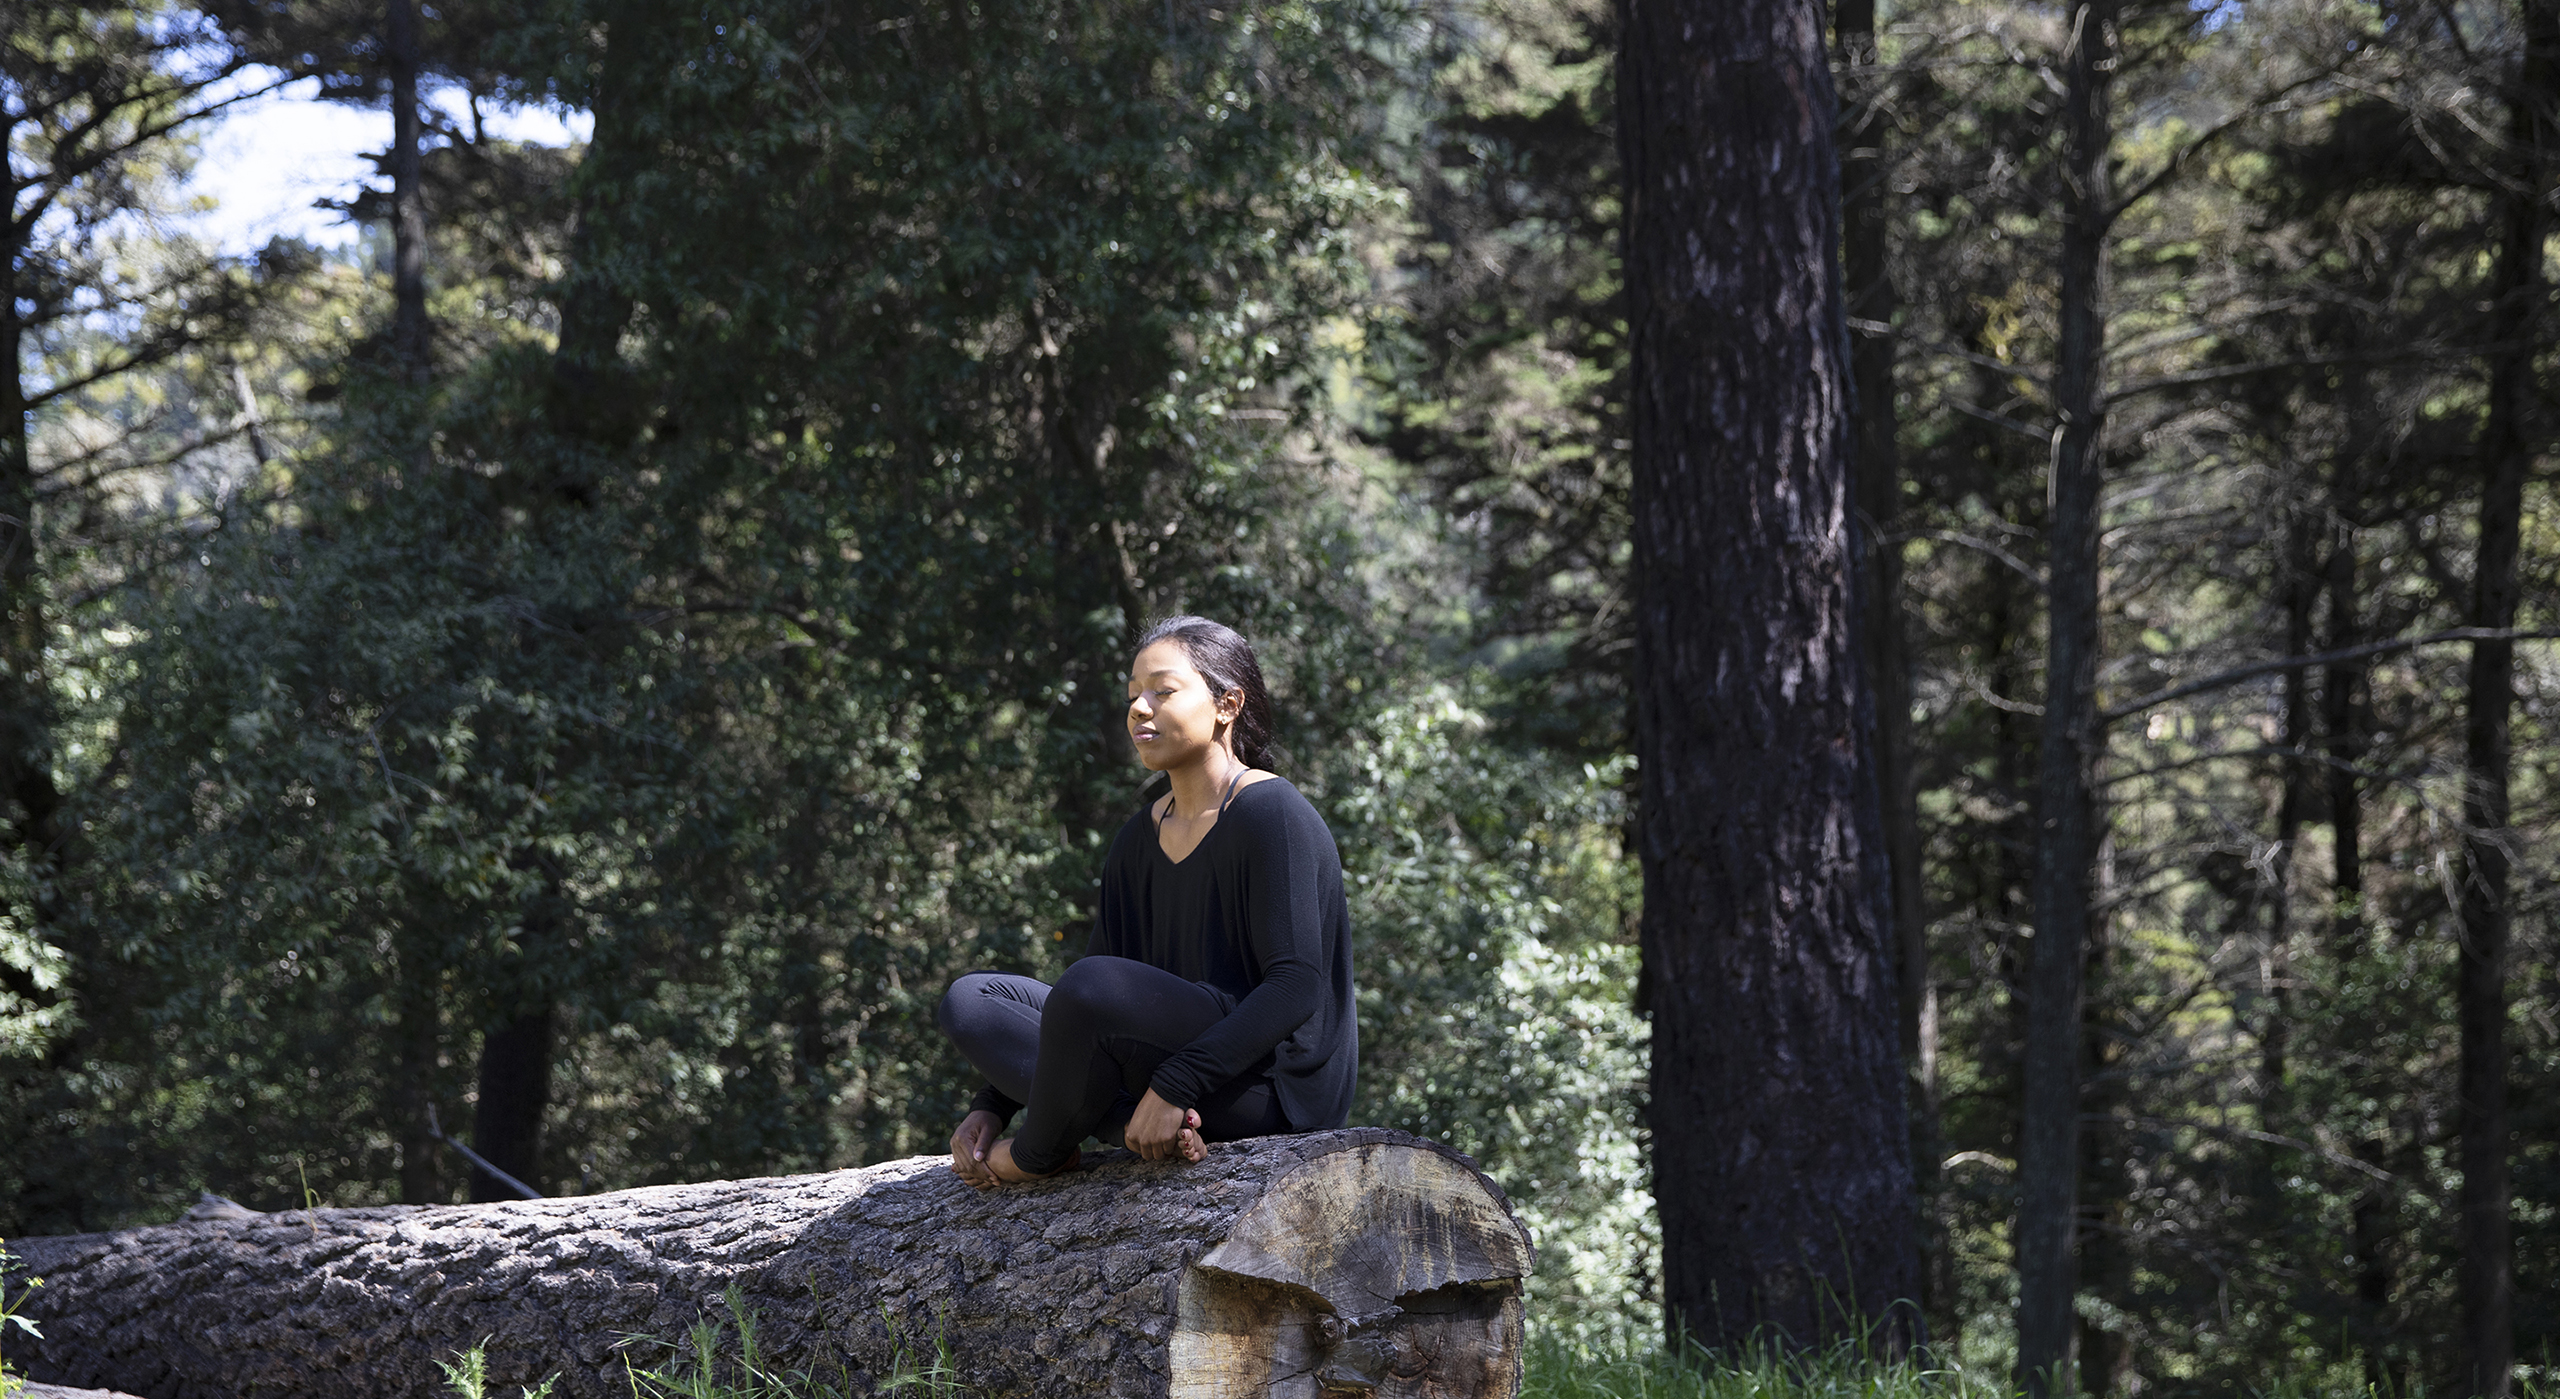 student engaging in yoga on a tree trunk